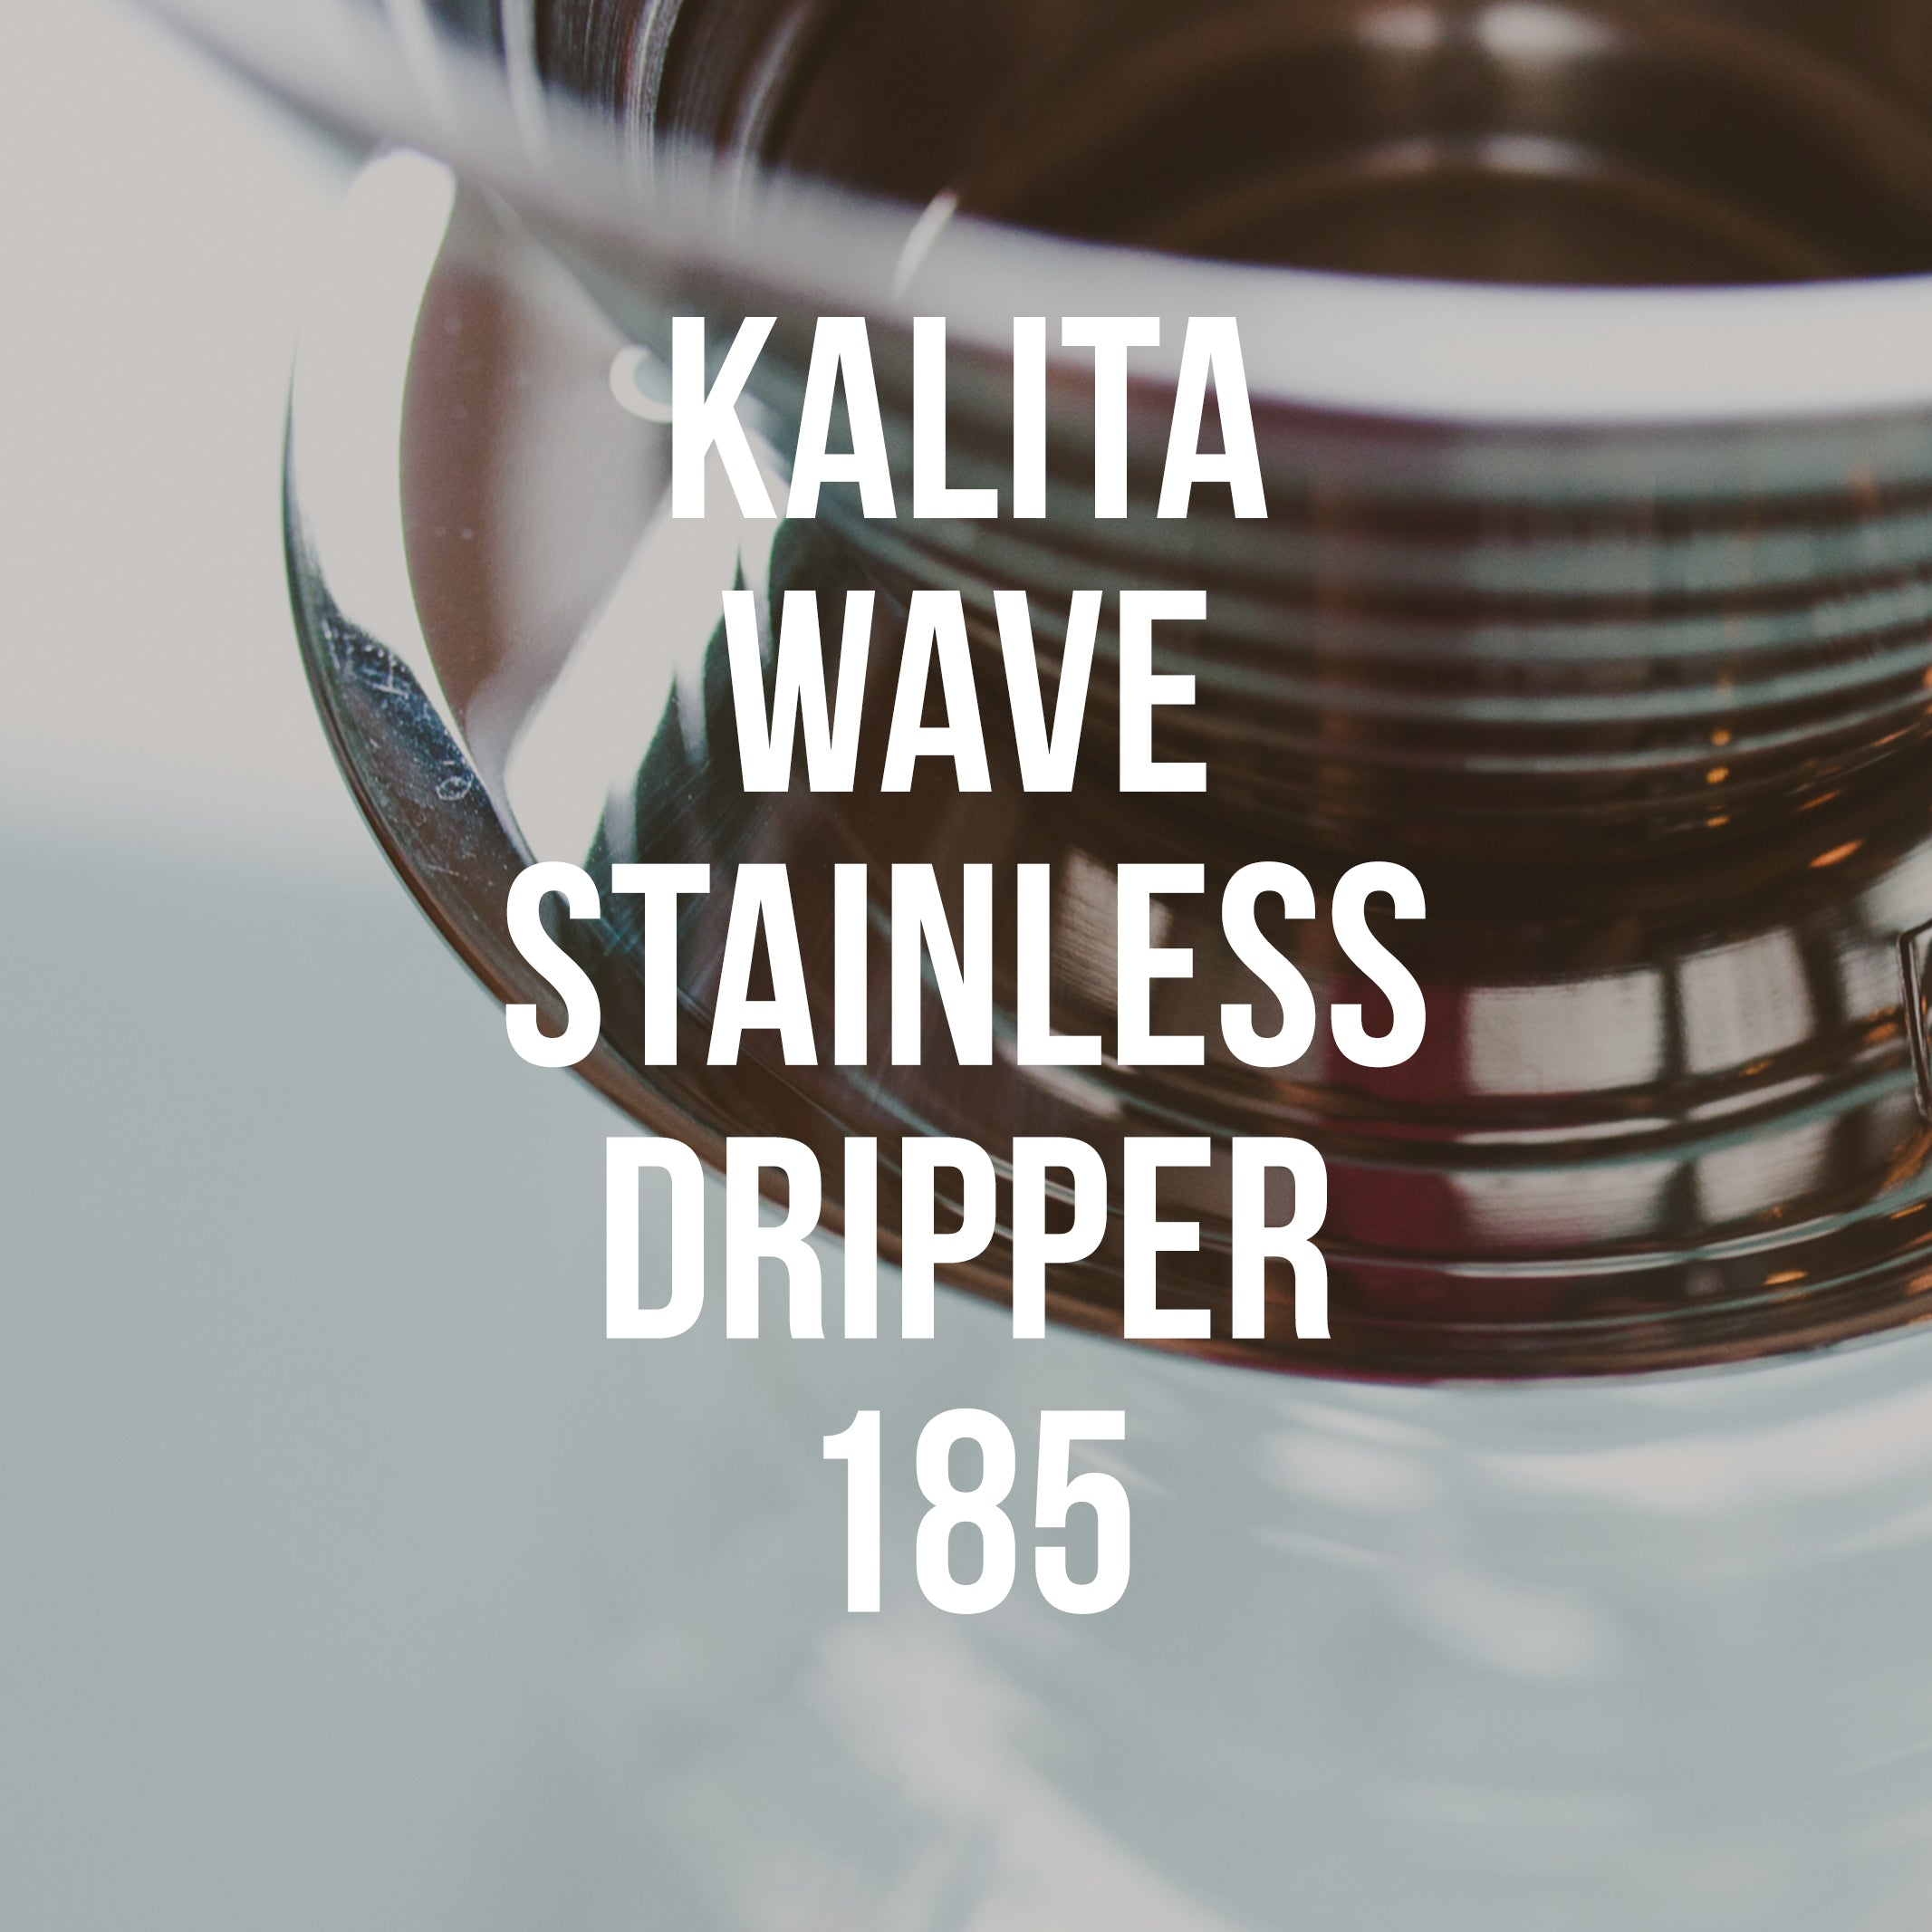 Https Daily Products 71 Irving Kalita Coffee Pot Kettle 16 L Wave Stainless 185 Eae7e236 9de5 441a B0be F7afc9f7b97bv1534181125